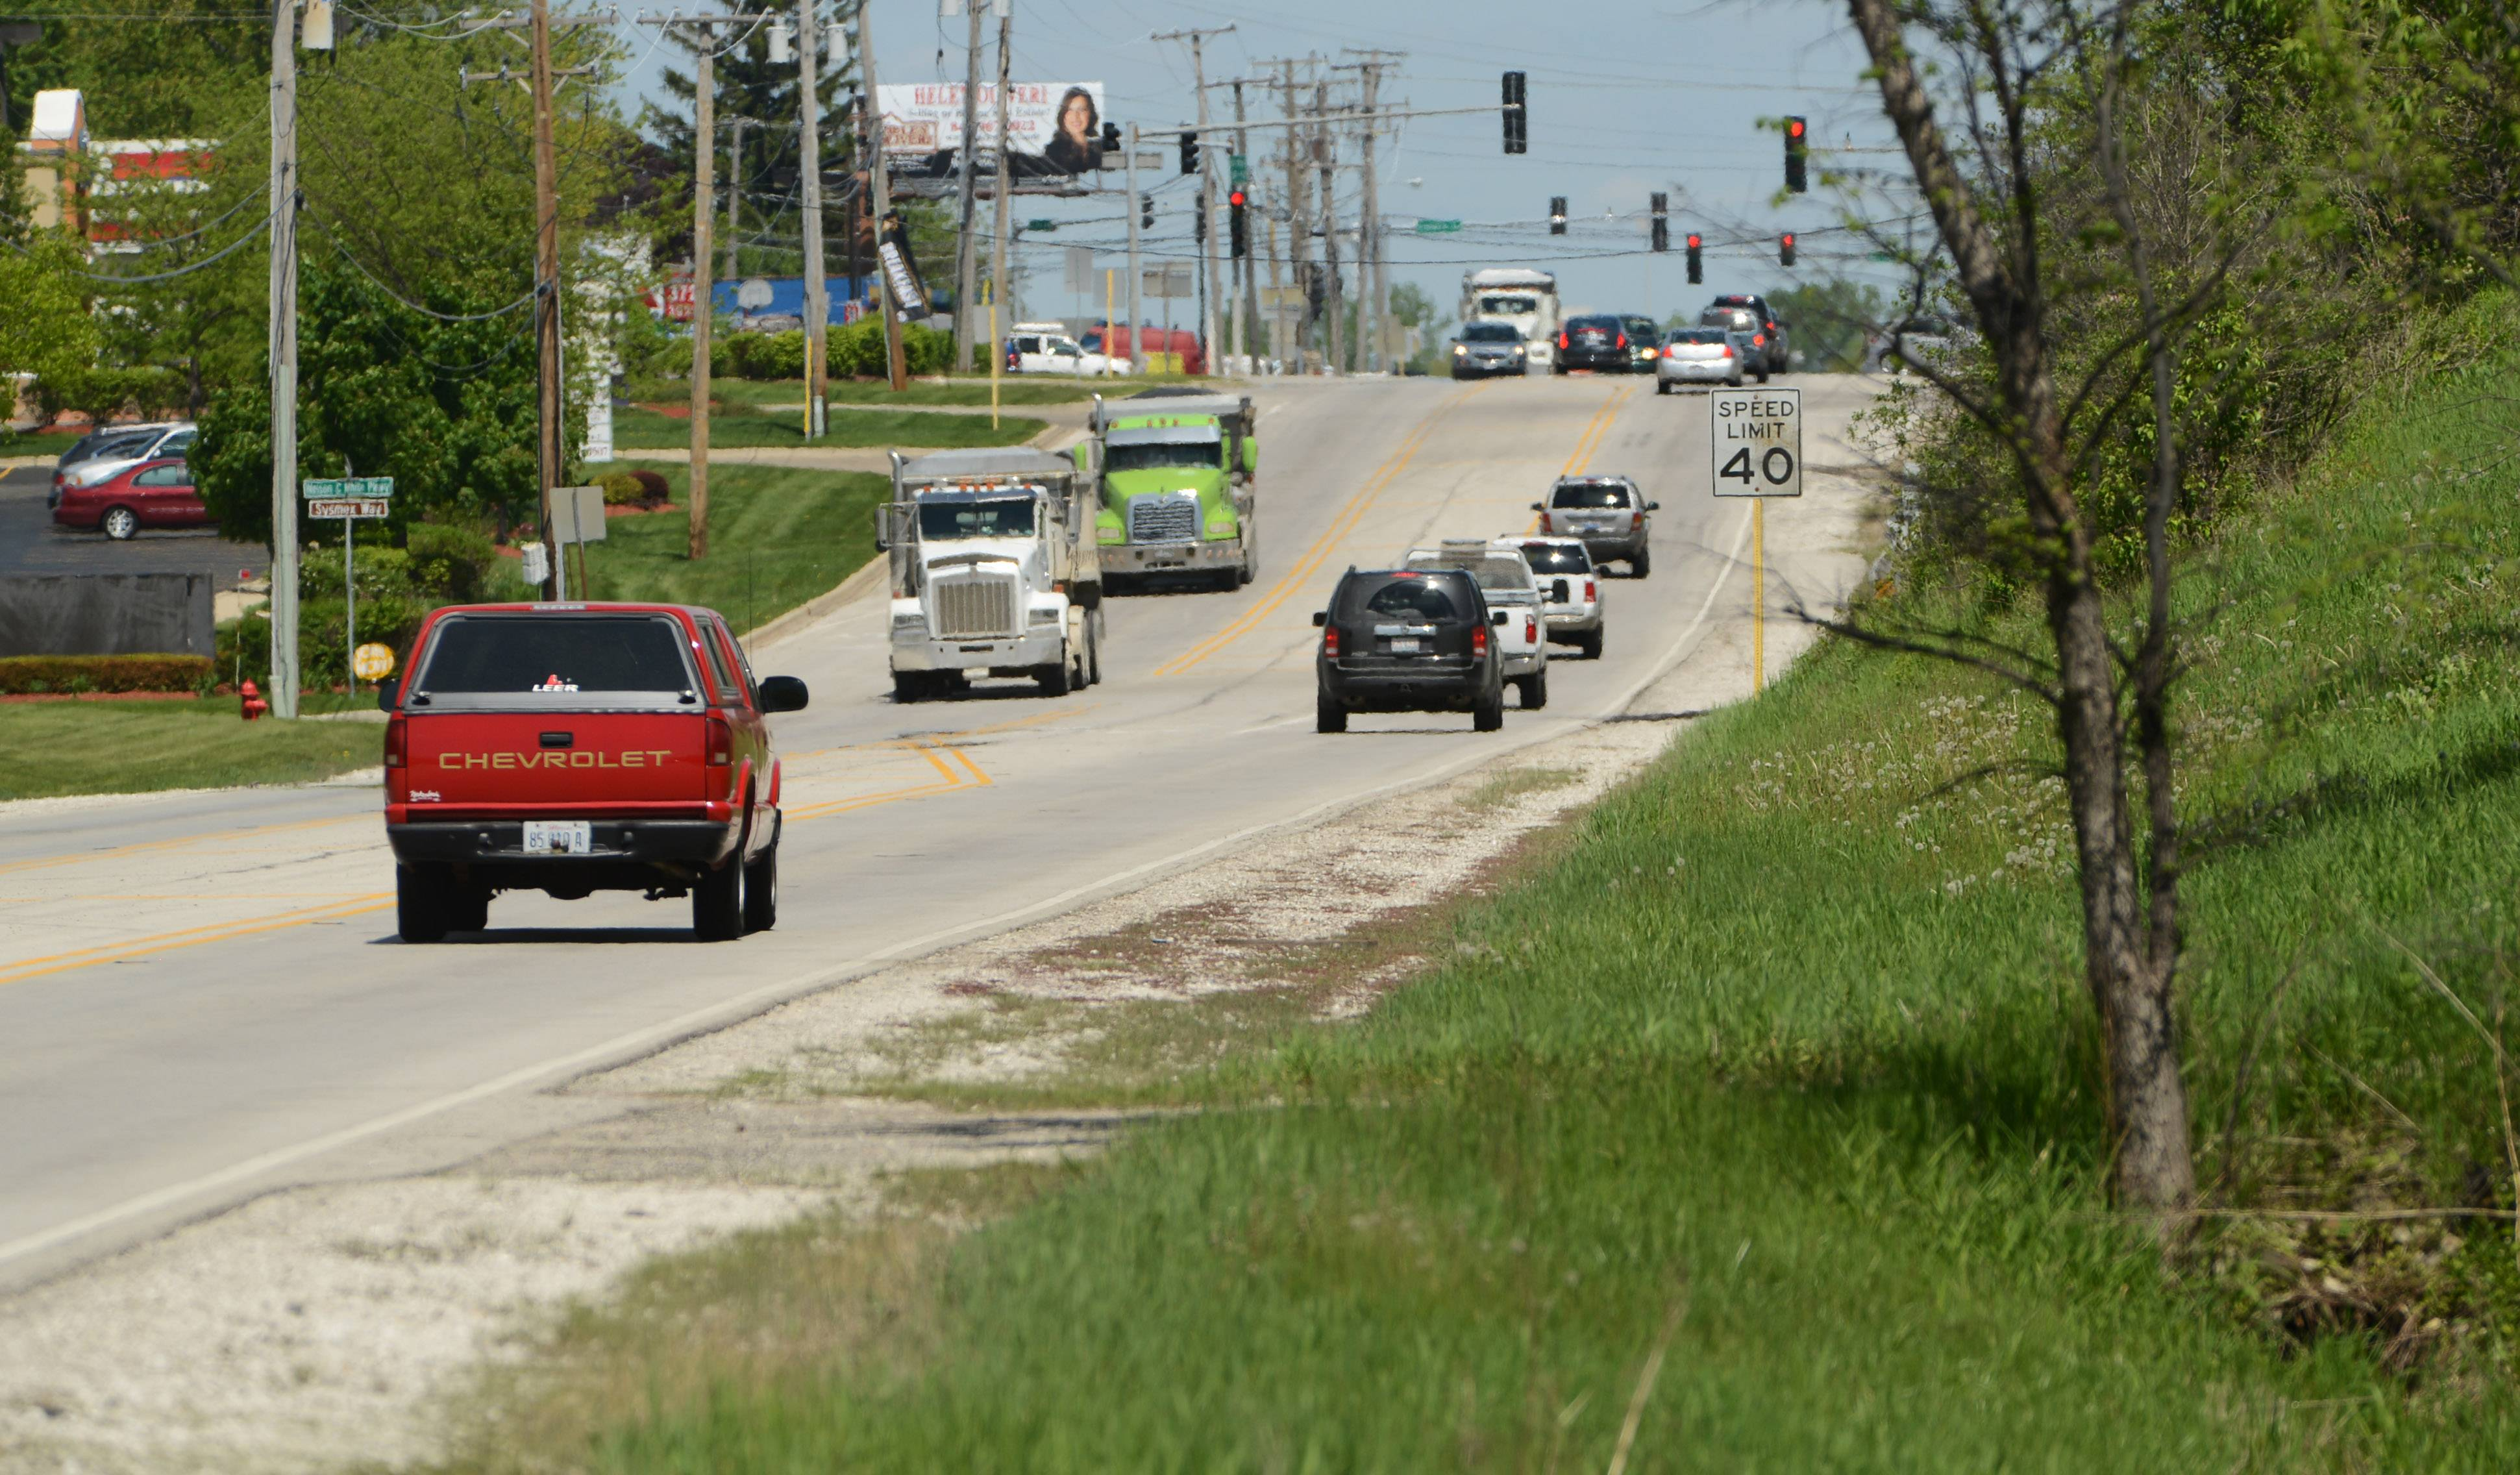 Carl H. Roderwald, 40, of Mundelein, likely was the victim of a hit-and-run crash along Route 83 near McRae Lane, just south of Route 176 in Mundelein.